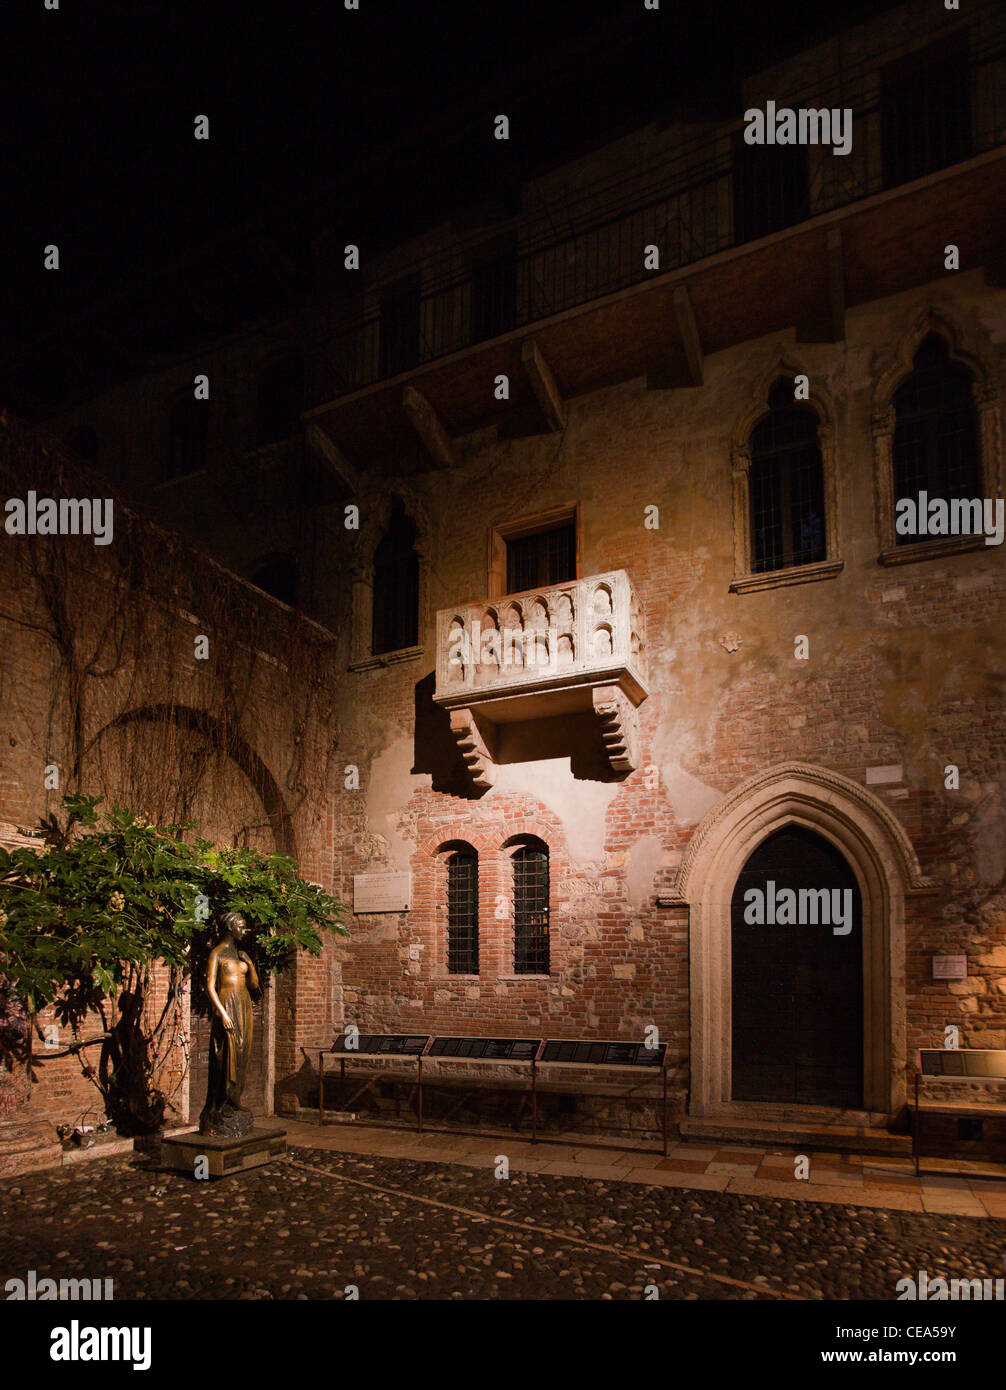 romeo  u0026 juliet u0026 39 s balcony at night  verona  italy stock